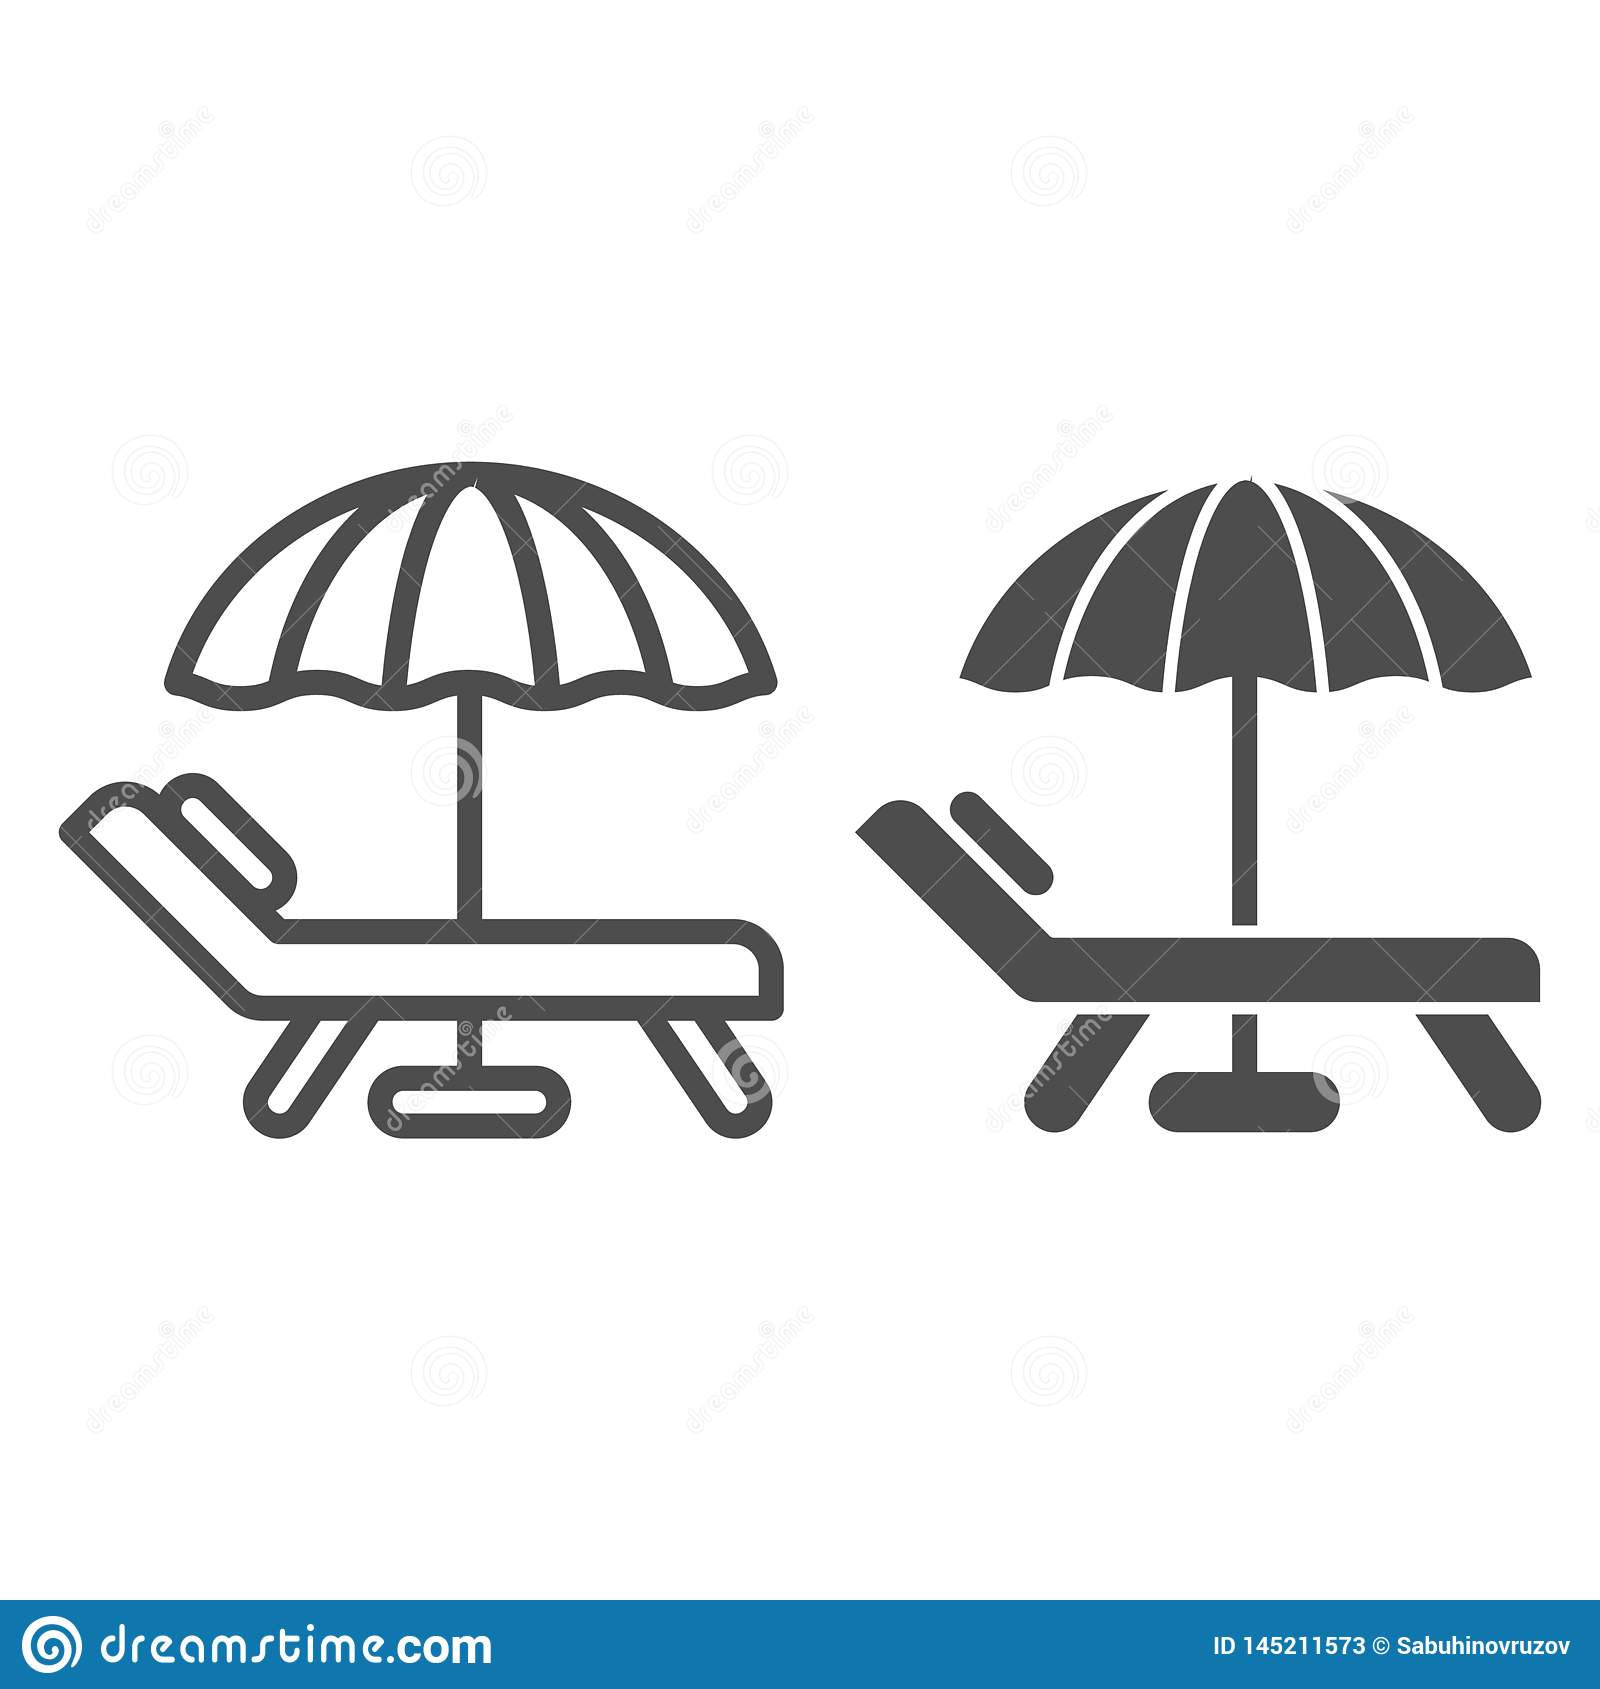 Beach umbrella and chair line and glyph icon. Vacation vector illustration isolated on white. Travel outline style